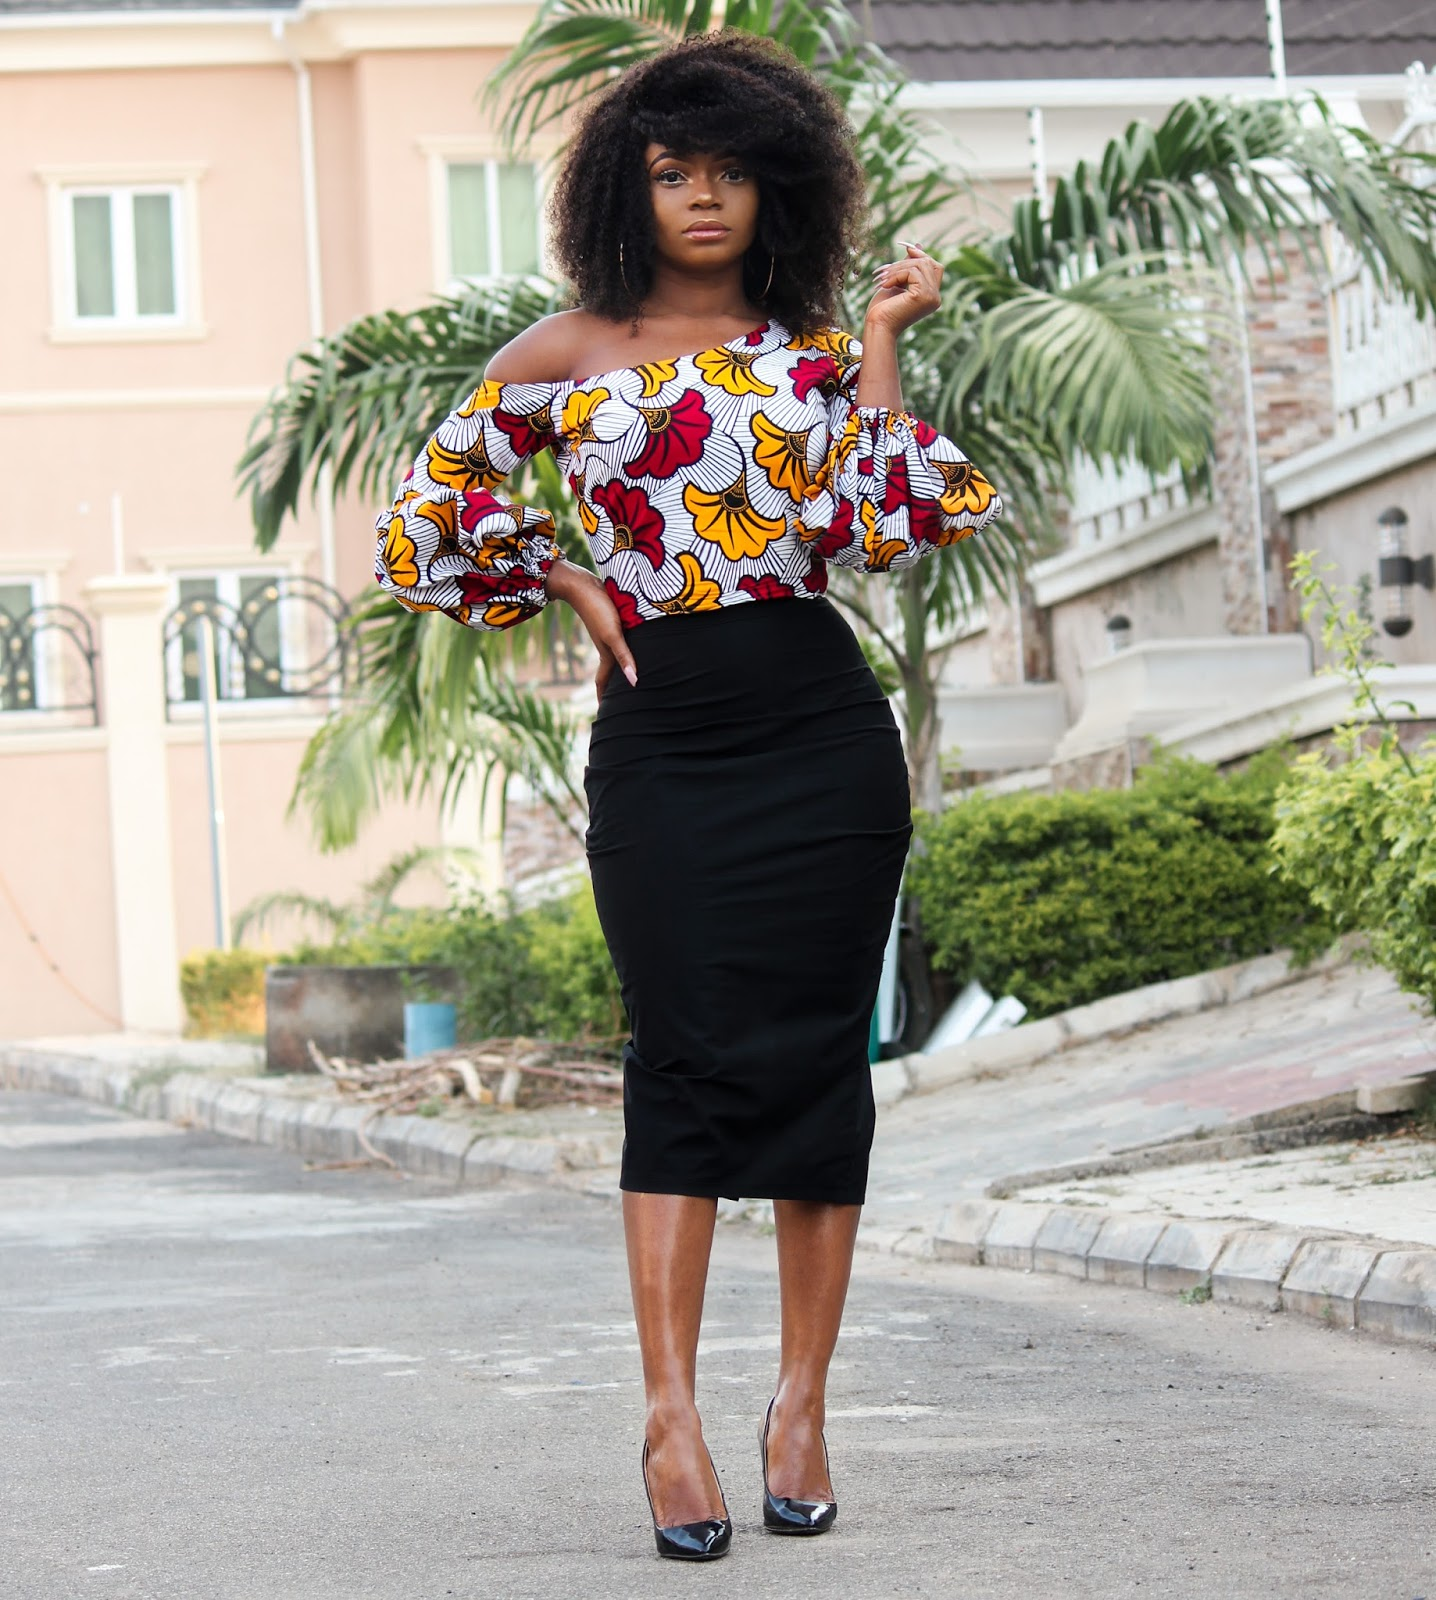 ANKARA TOP + BLACK MIDI SKIRT - Ankara 'Kpotuba' Print Skewed Neckline Top with Black Midi Skirt